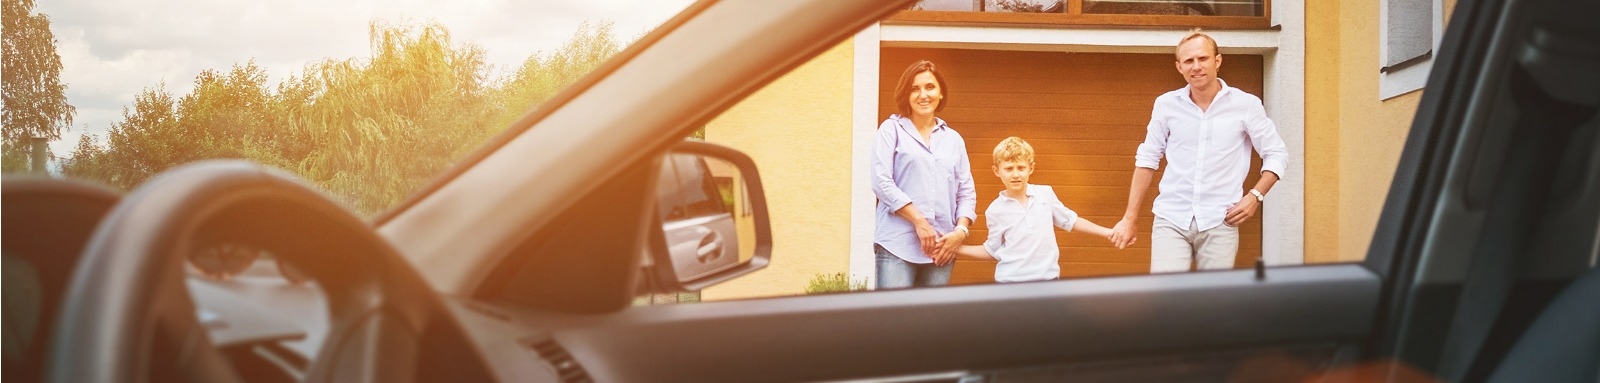 man woman and boy standing in front of a garage door next to a parked car